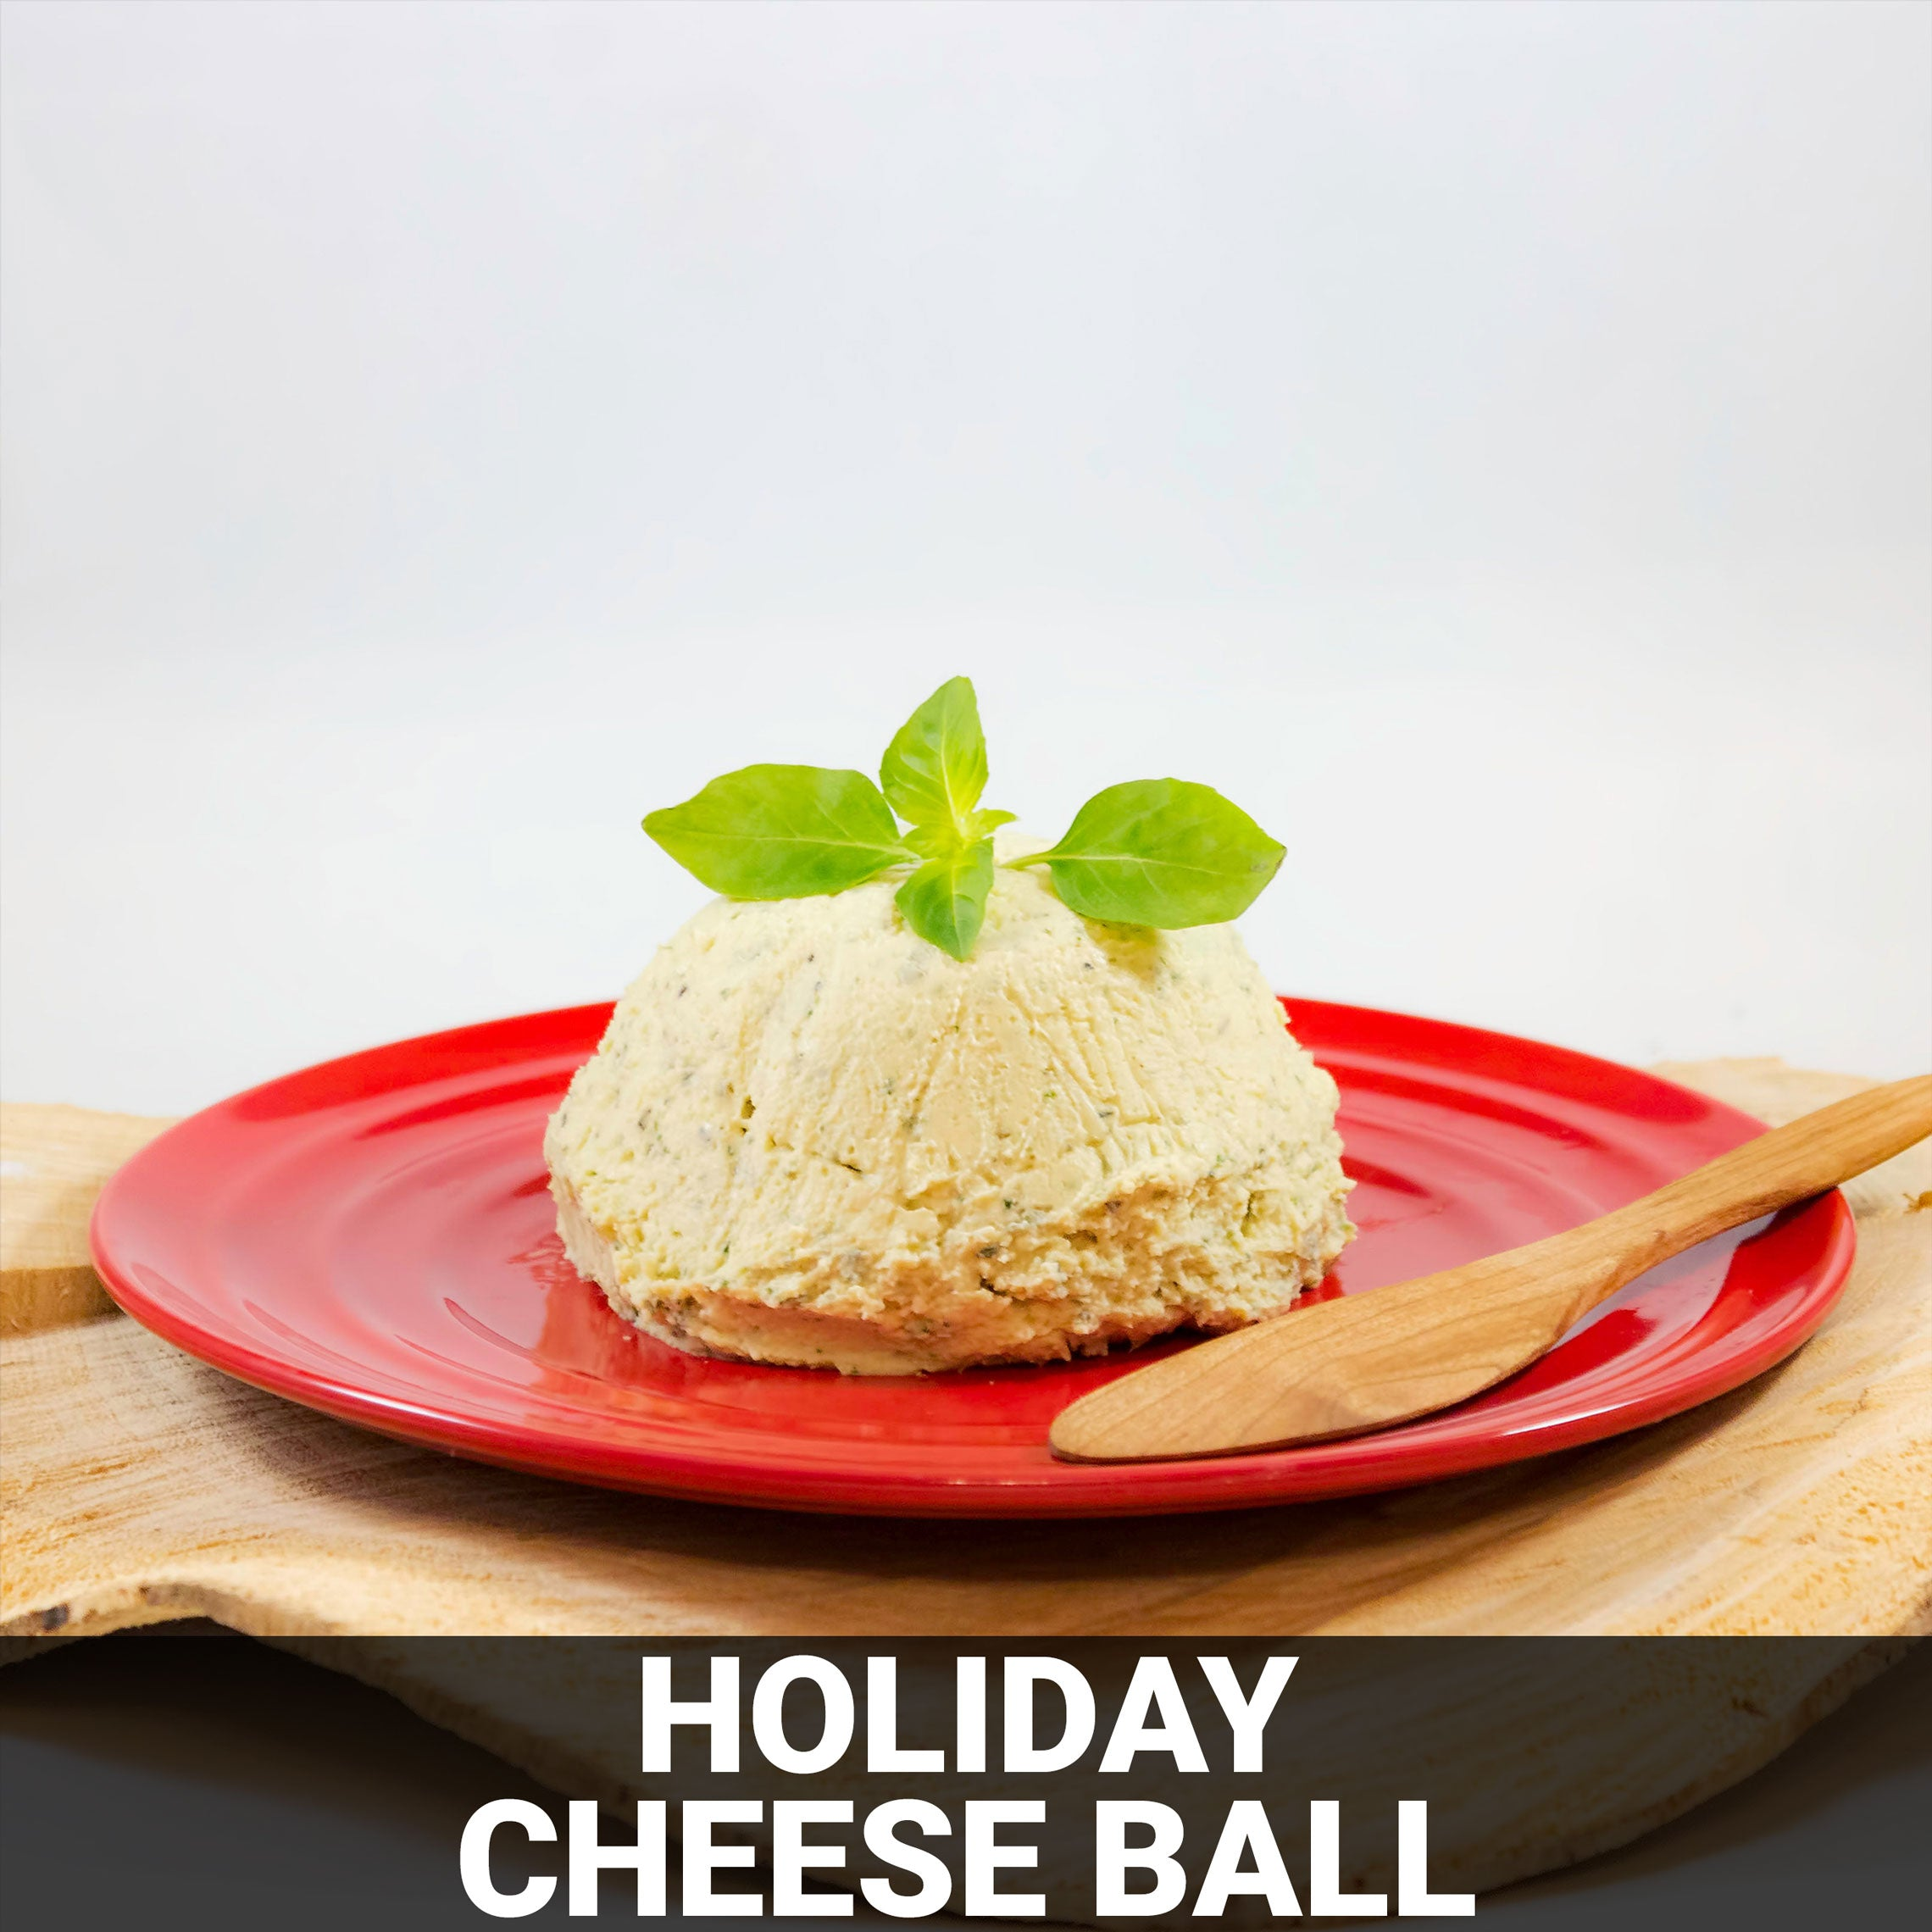 Holiday Cheese Ball Recipe Recipe - Foods Alive